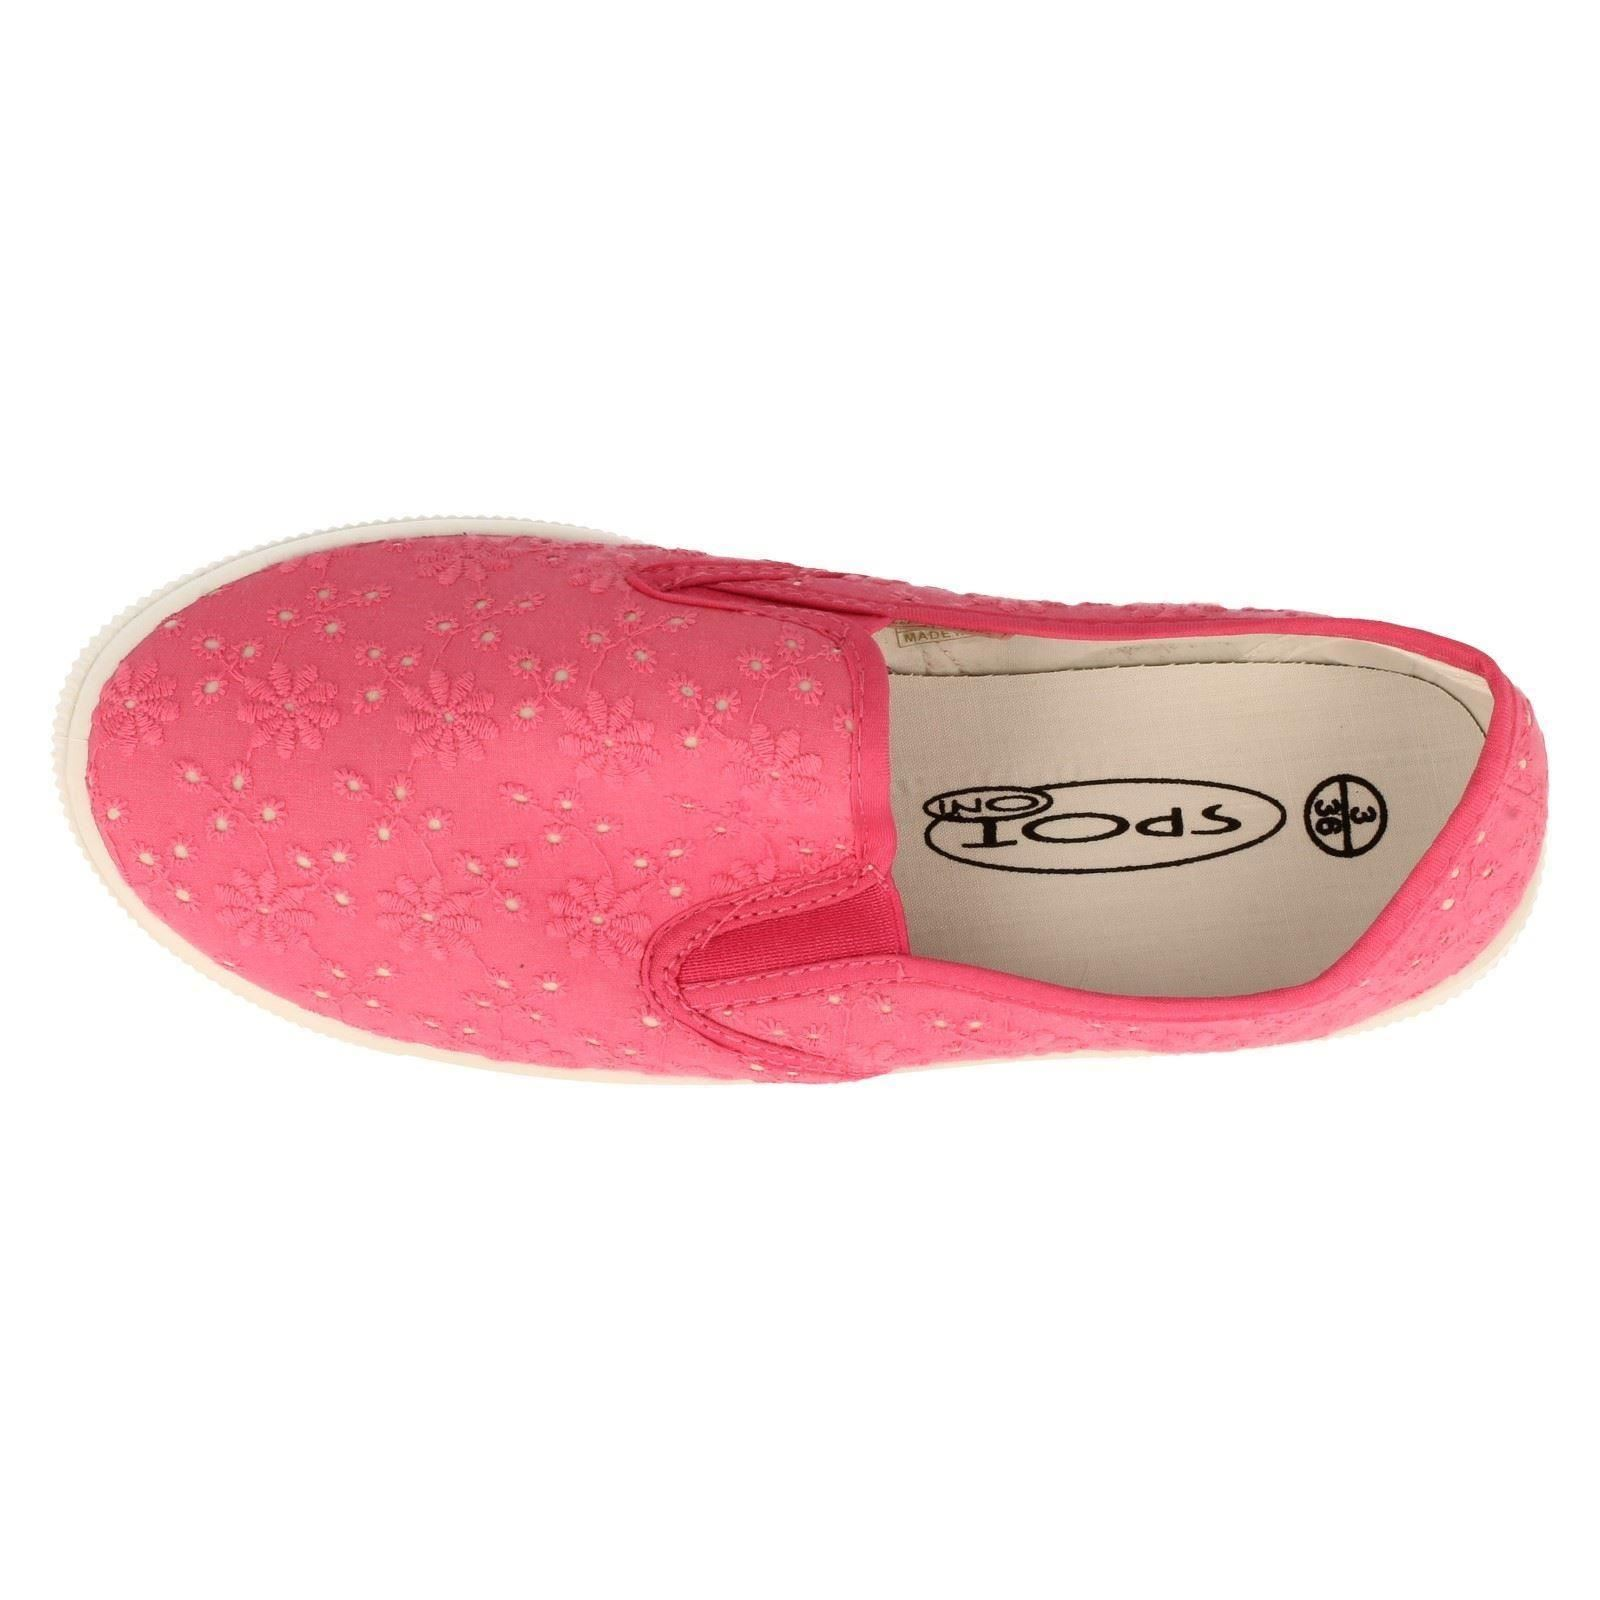 Ladies Spot On Shoes Label F80056-W